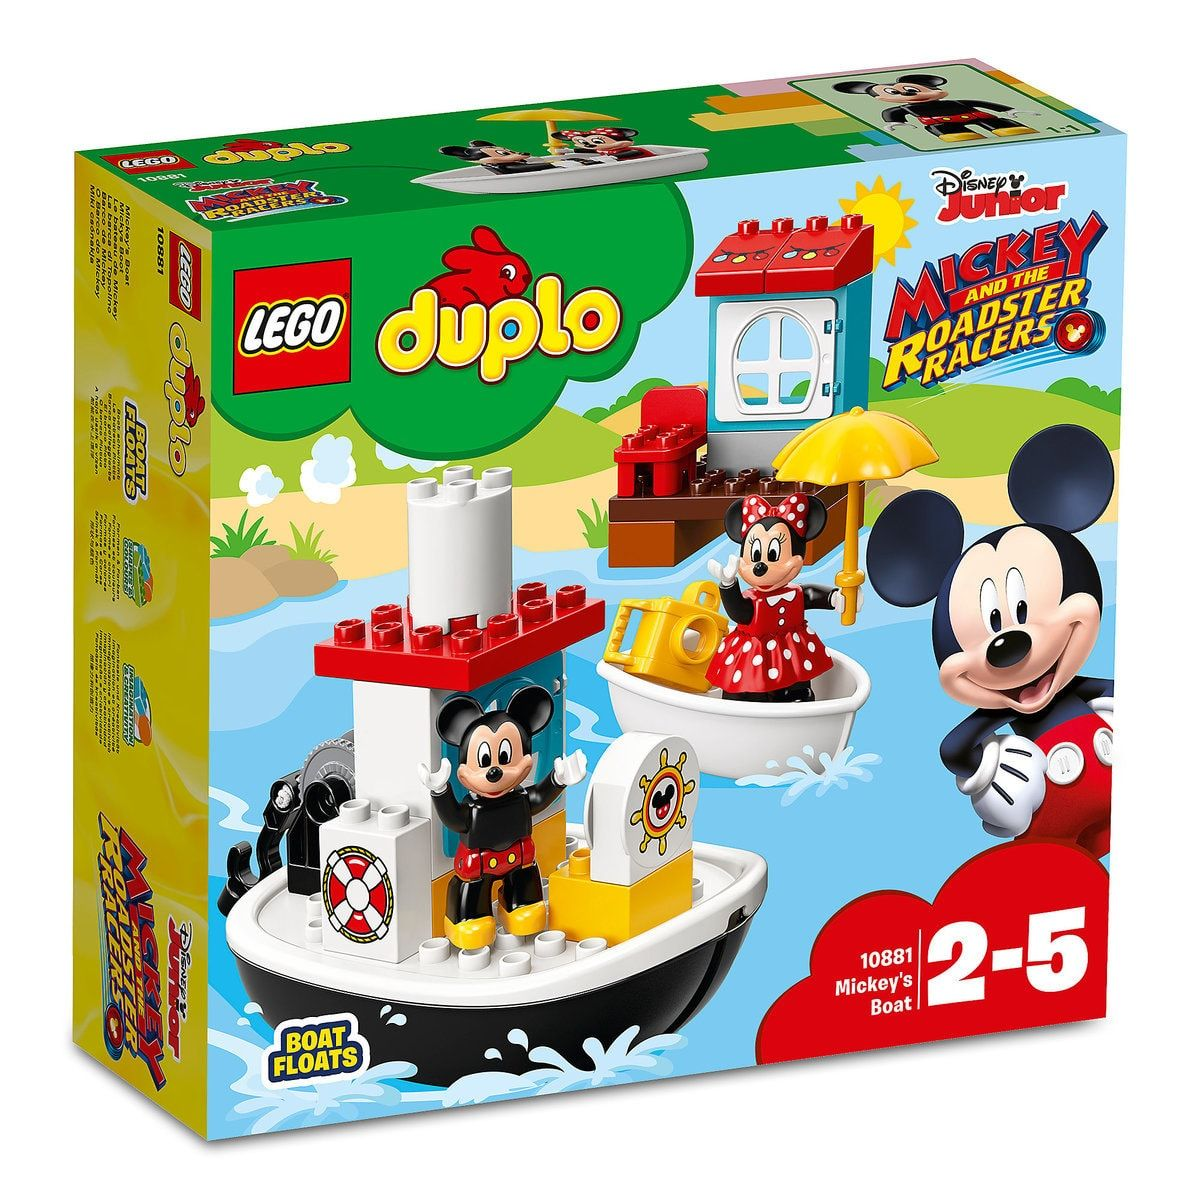 Mickey Mouse Boat Duplo Playset By Lego Mickey And The Roadster Racers